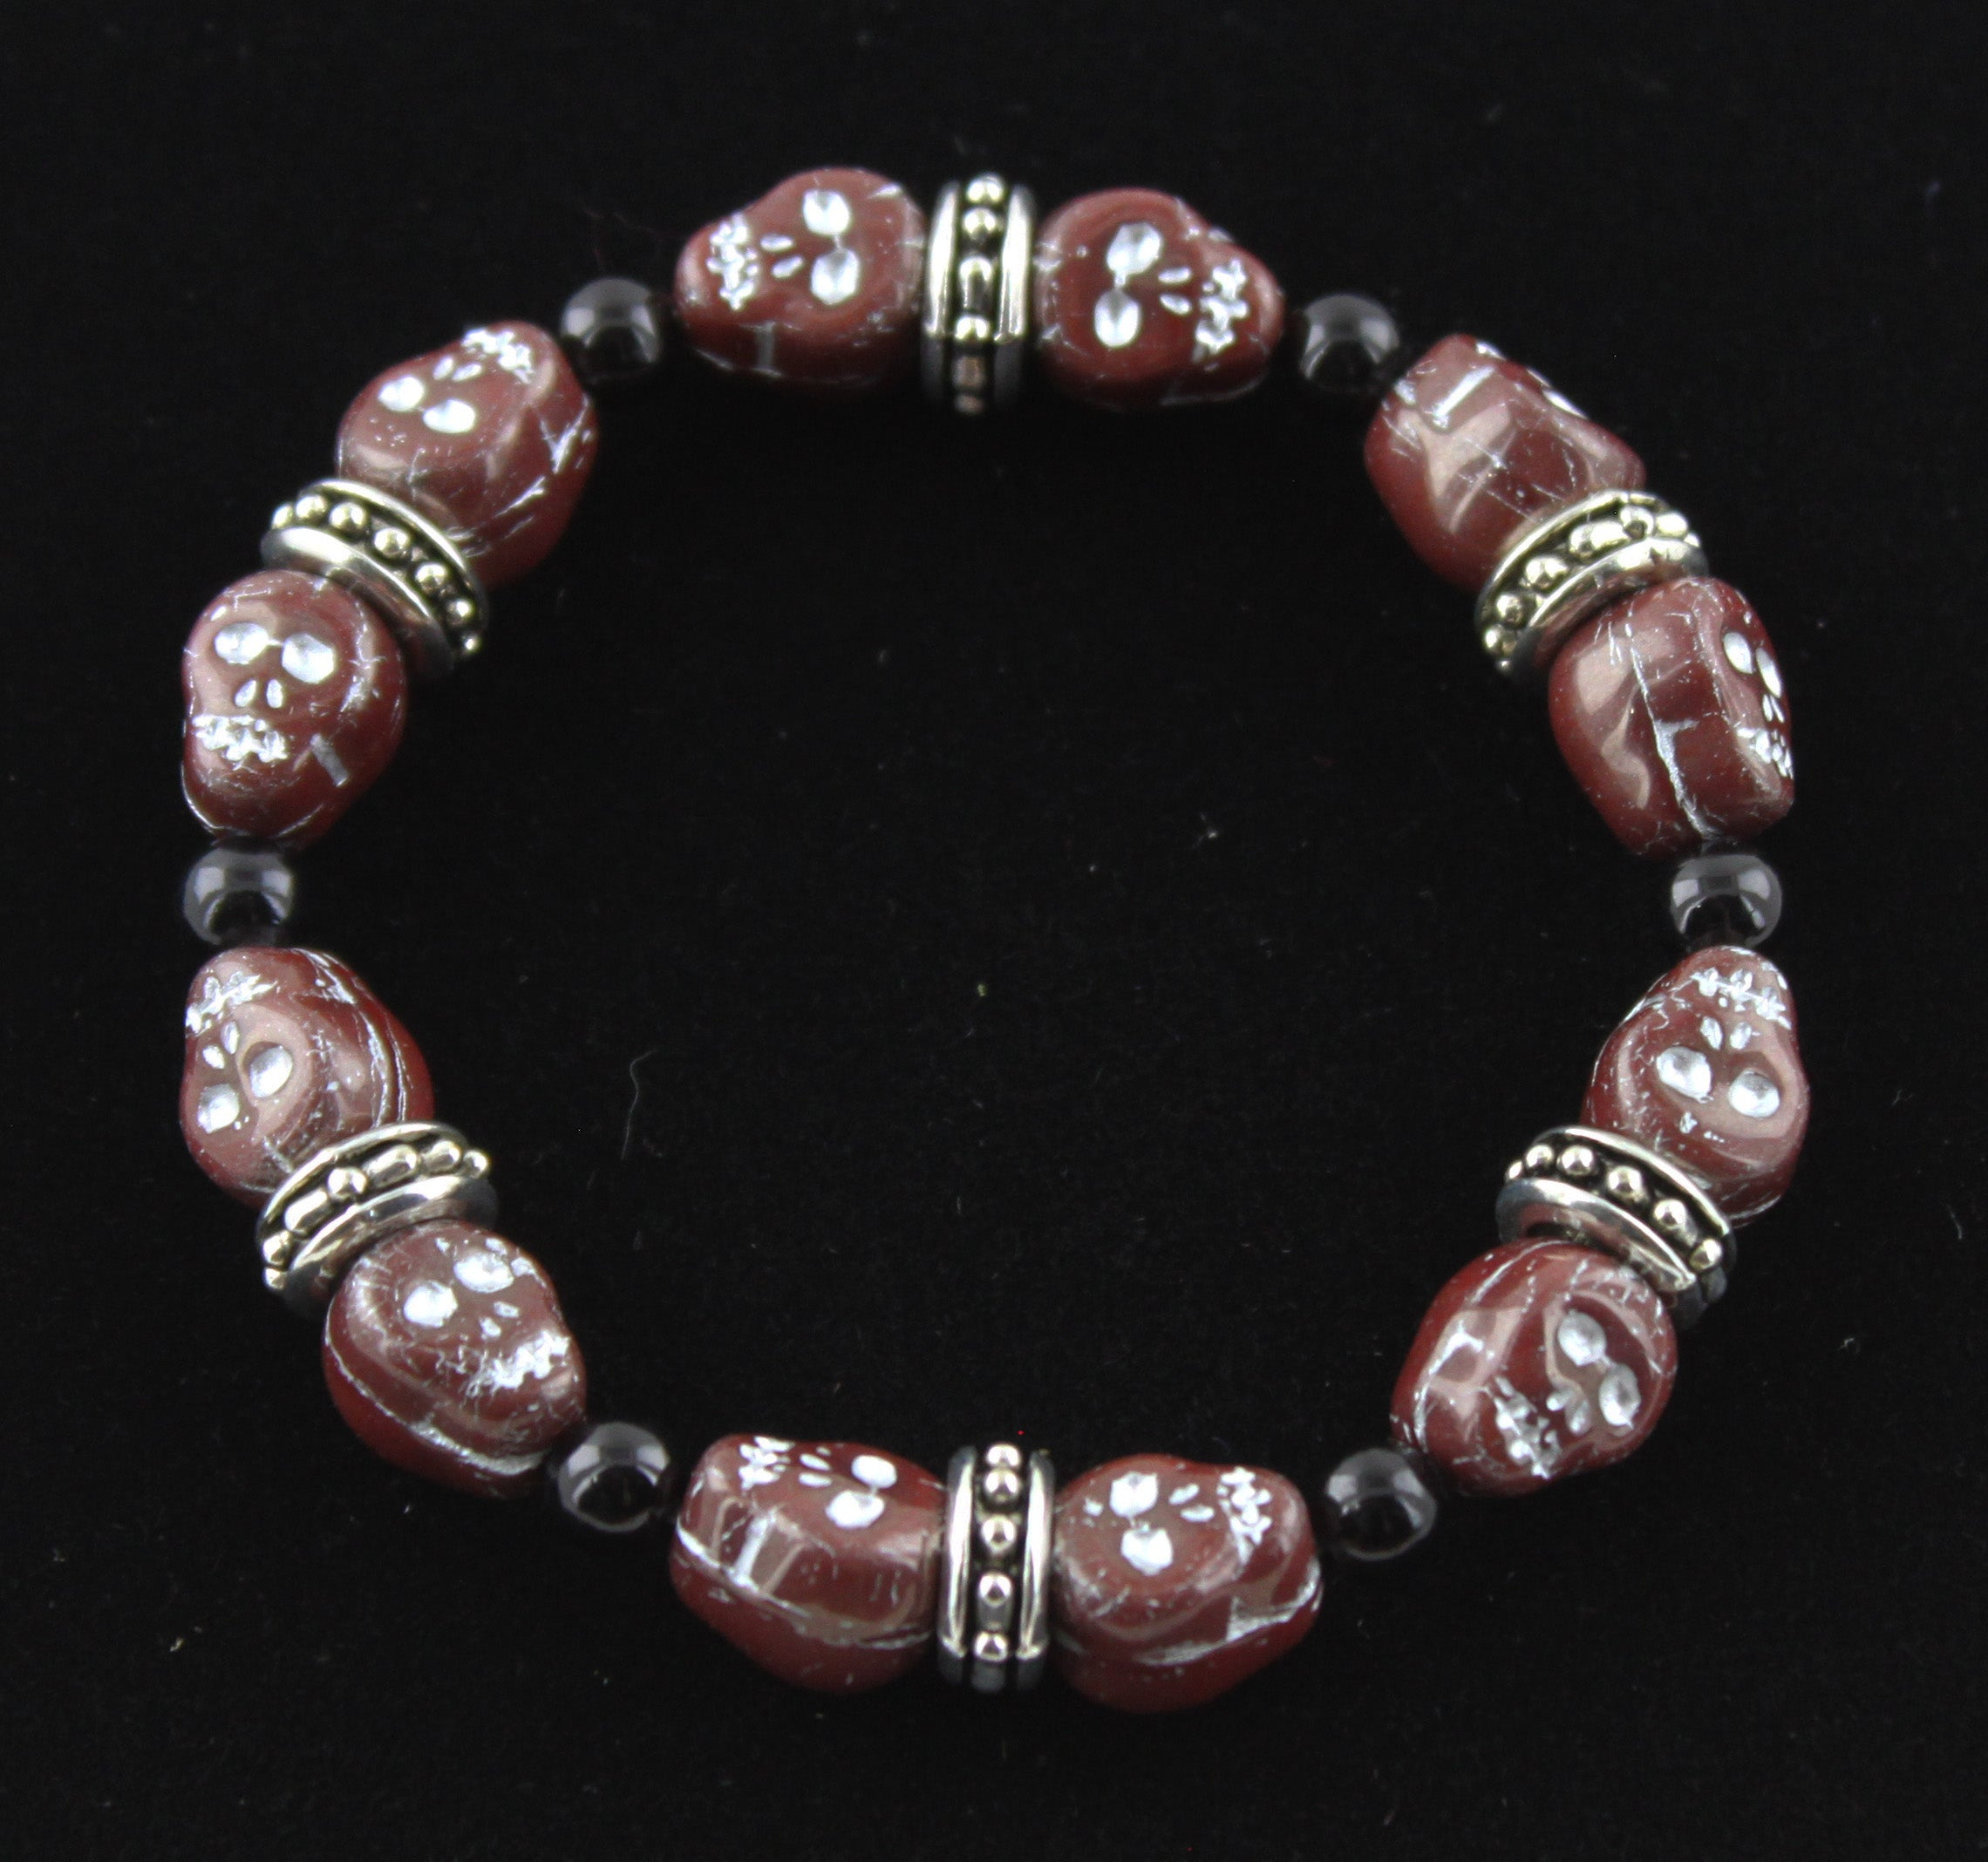 Deep Red & Black Skull Bracelet with Silver Accents